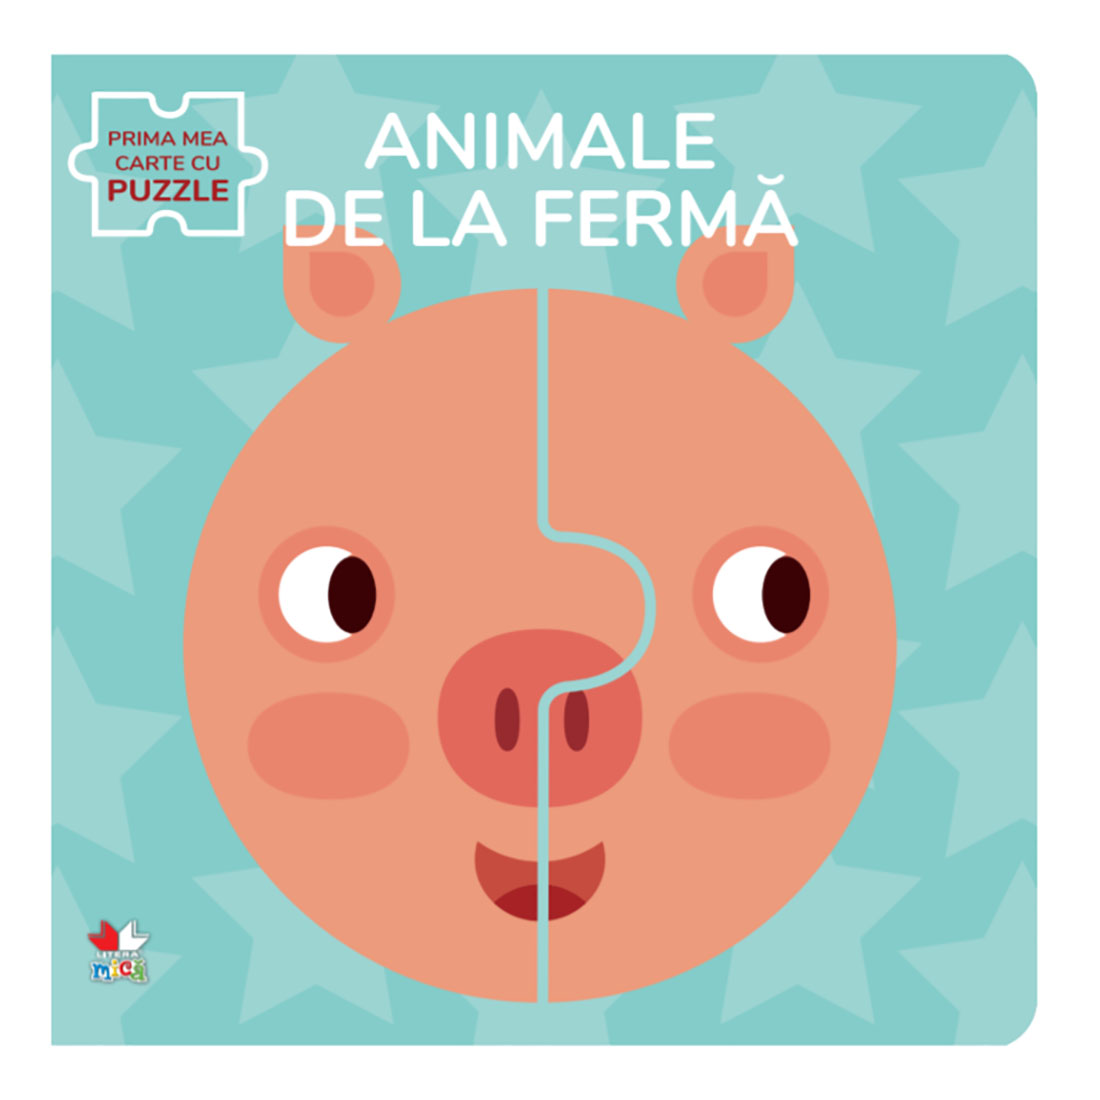 Carte Editura Litera, Animale de la ferma, Carte cu puzzle imagine 2021